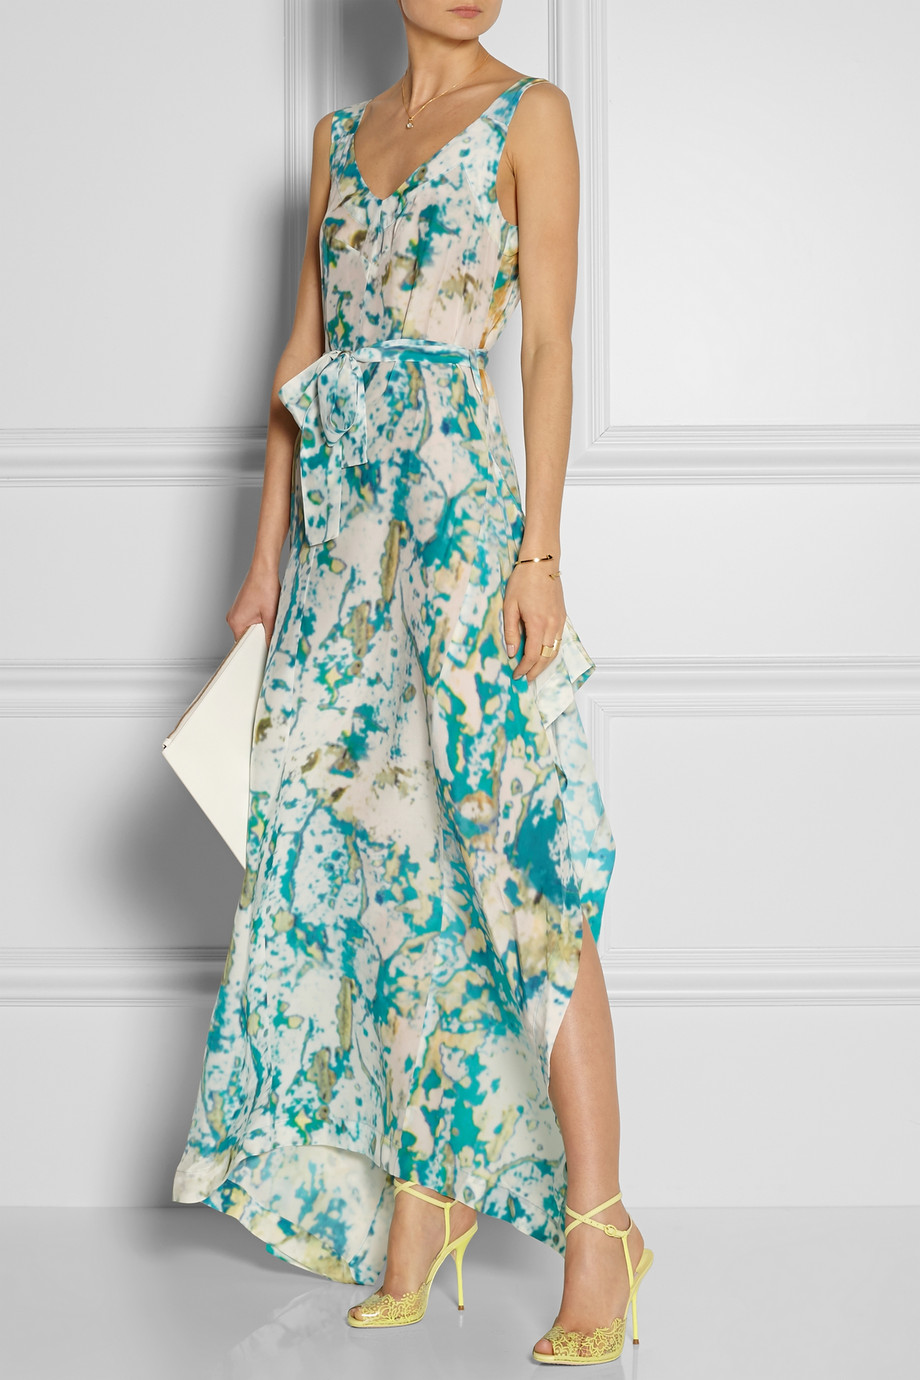 What to wear to a daytime summer wedding lauren messiah for Dress for a spring wedding